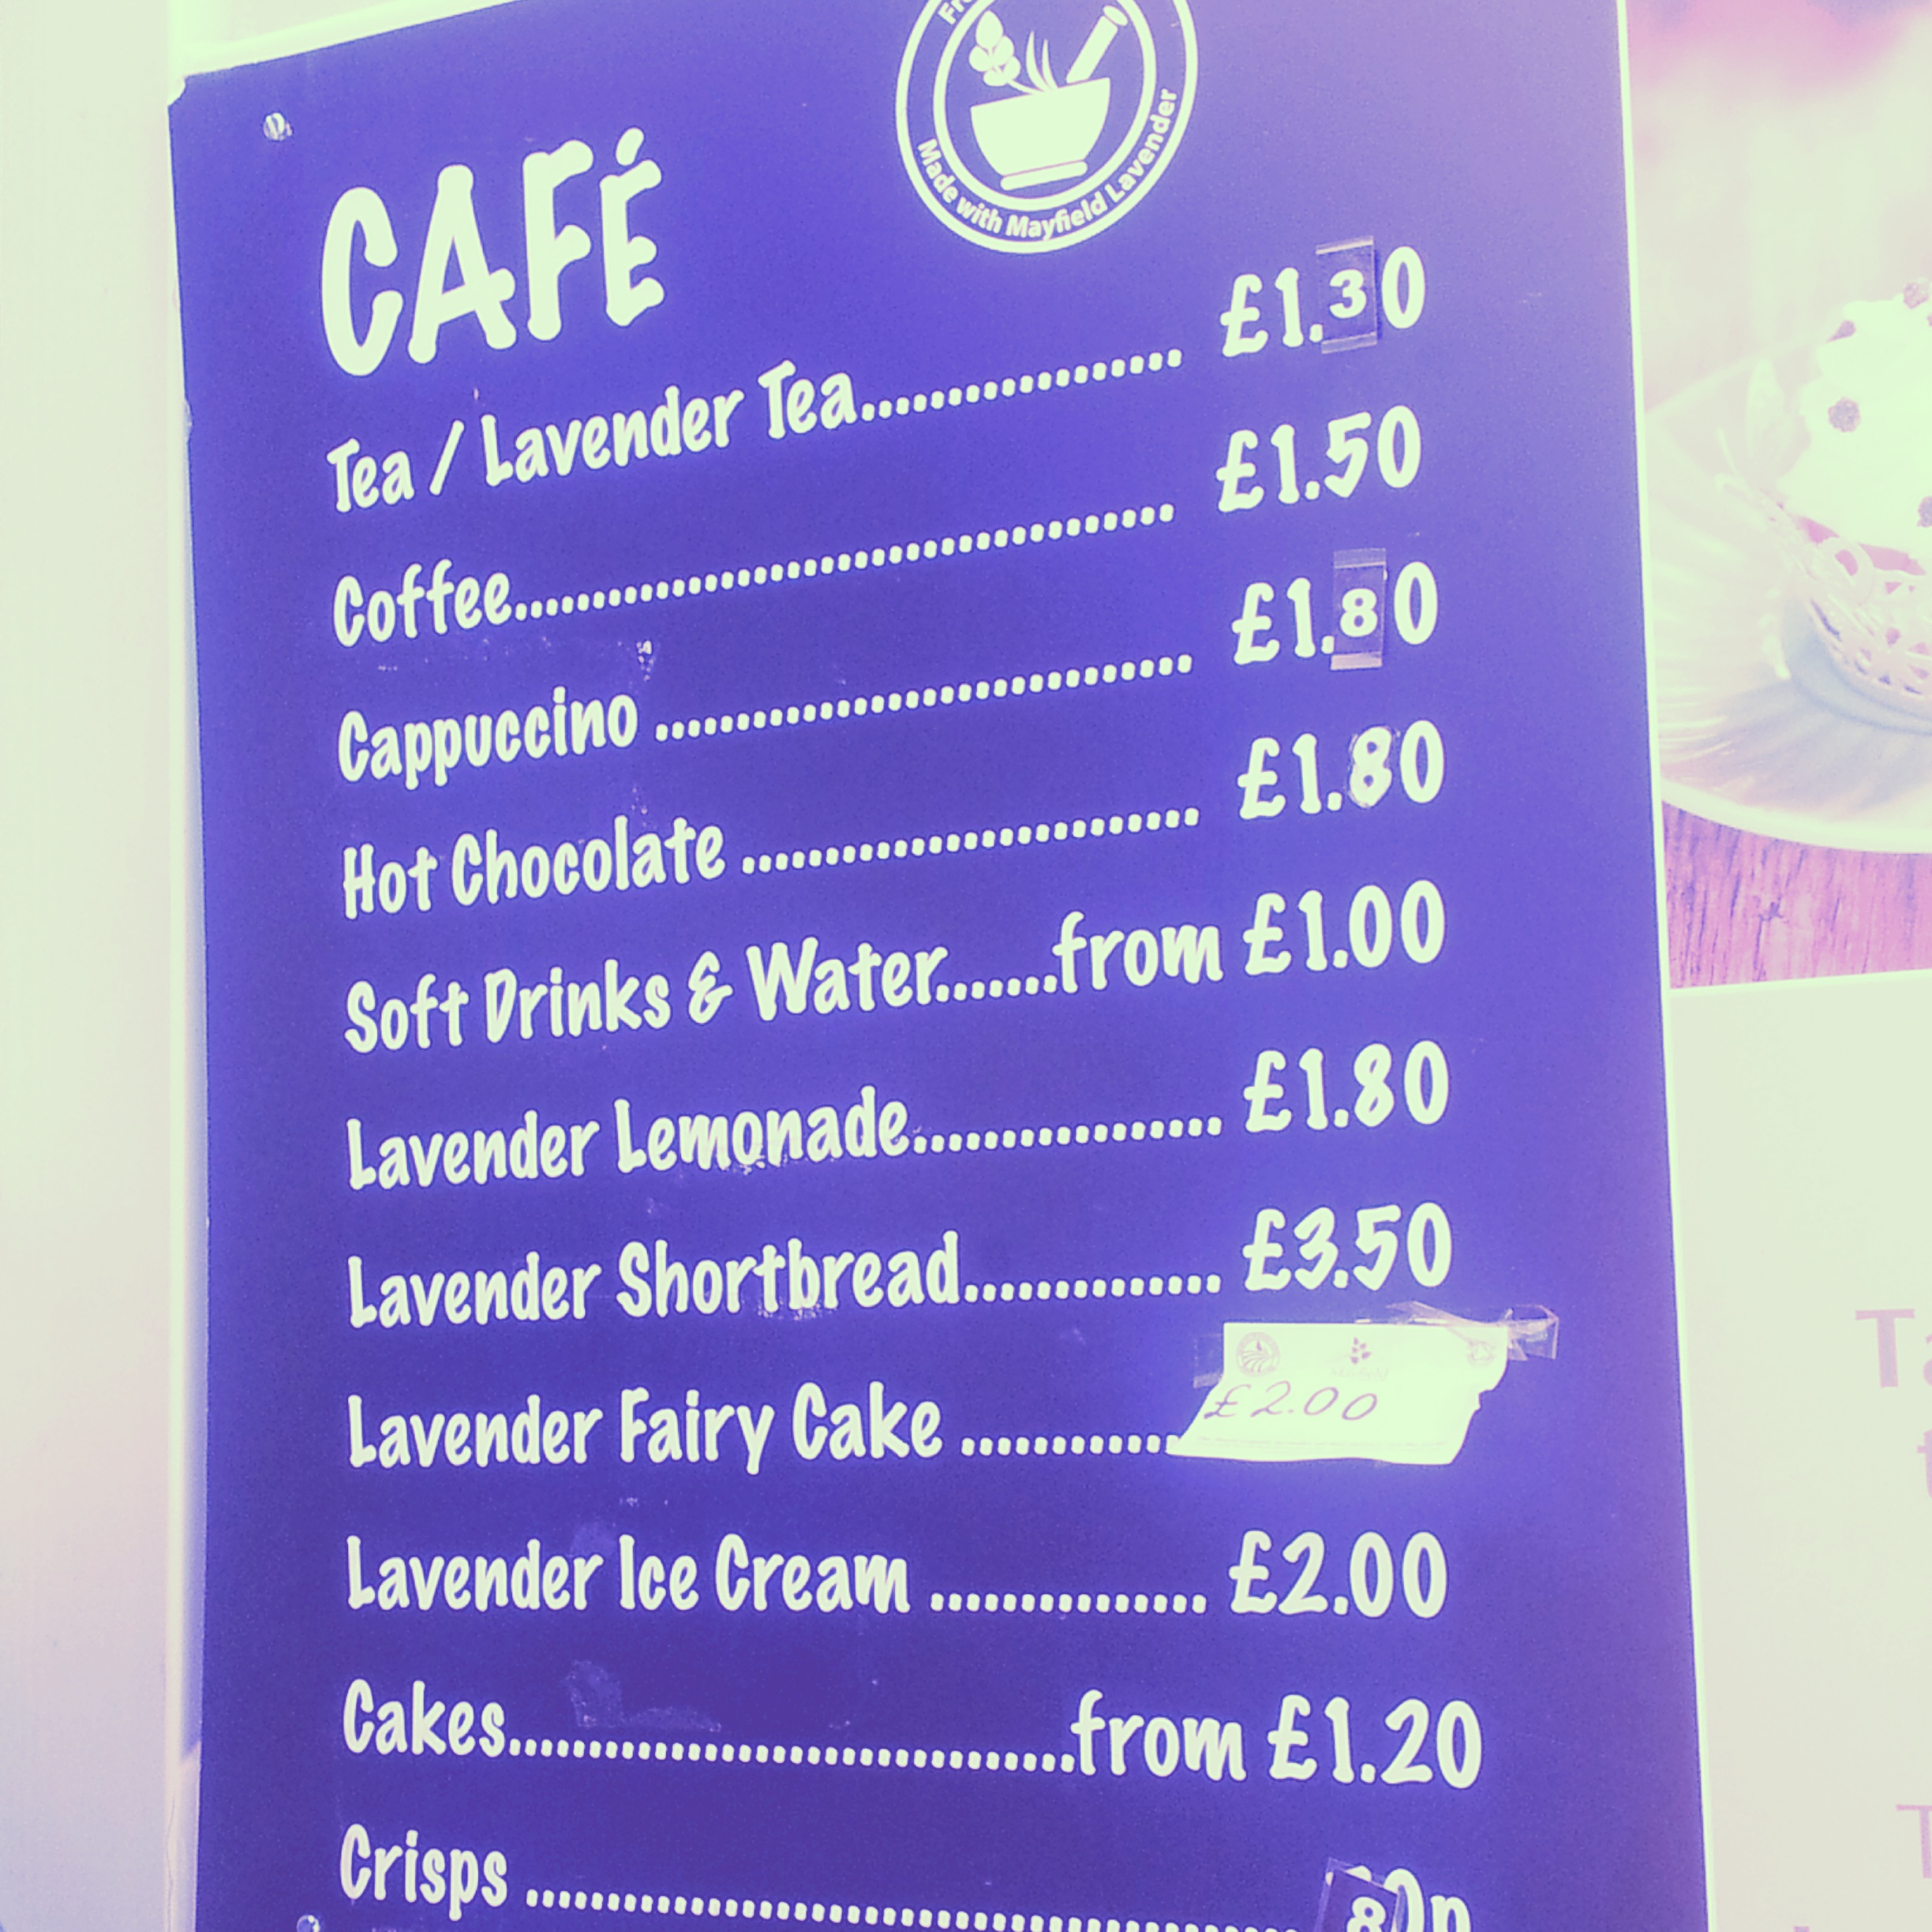 mayfield lavender fields cafe menu – why waste annual leave?